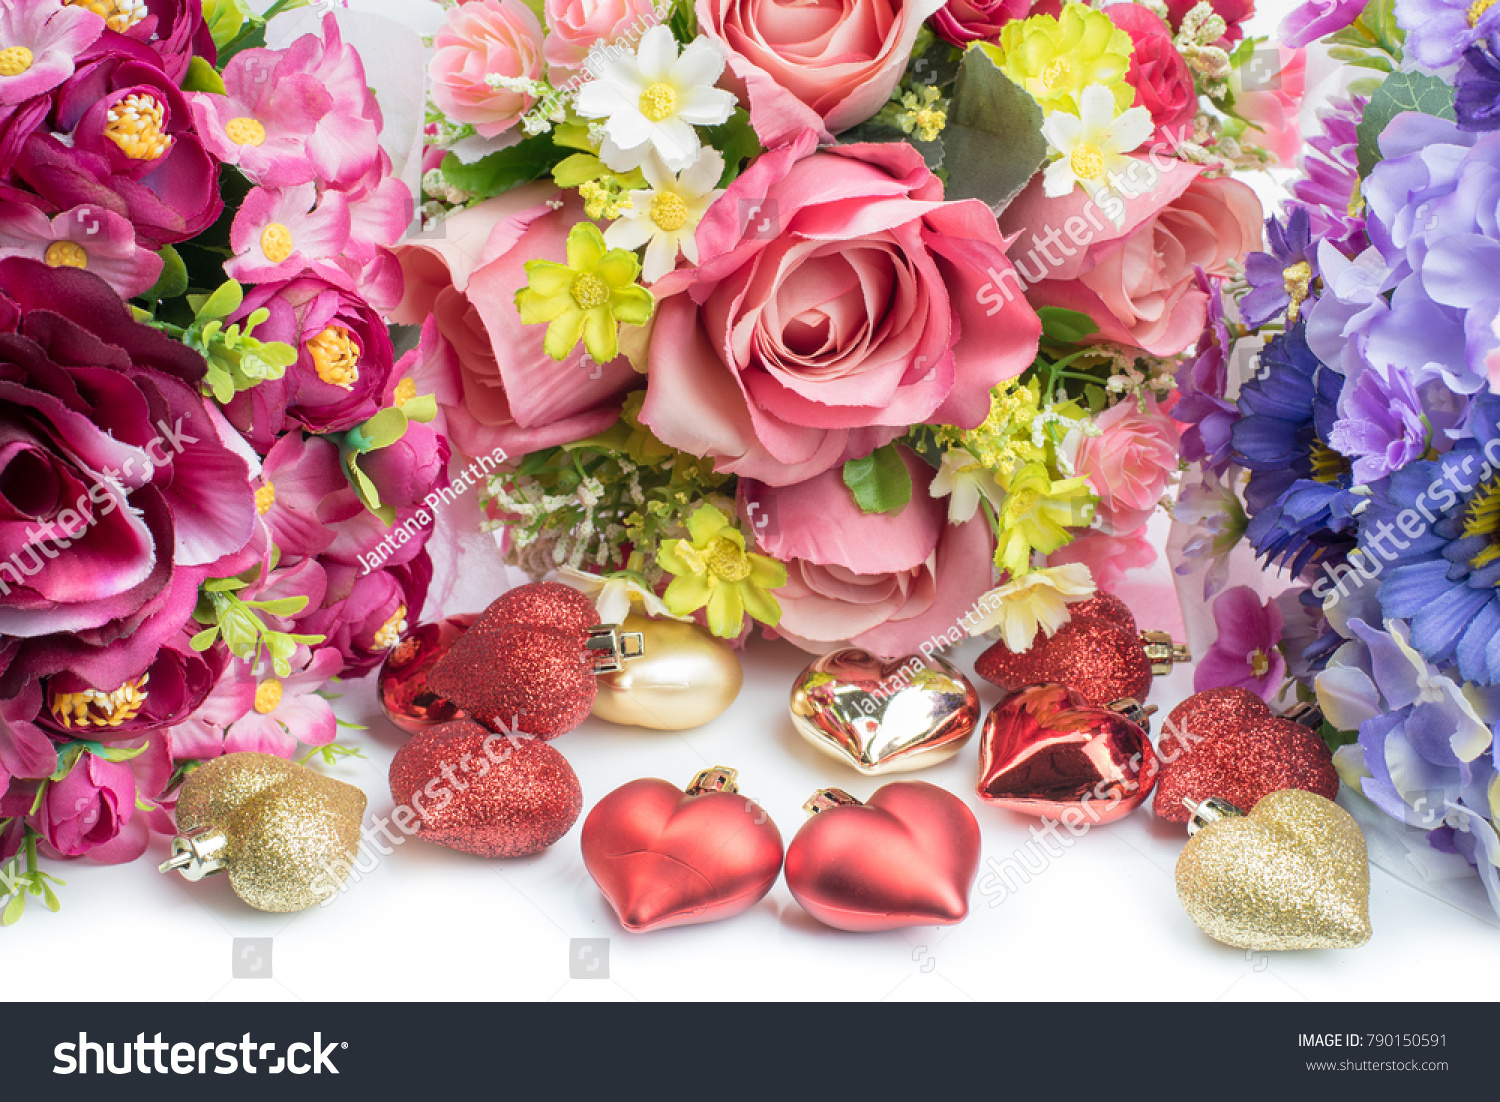 Bouquet colorful fake flowers red heart stock photo edit now bouquet of colorful fake flowers and red heart isolated on white background valentine day concept izmirmasajfo